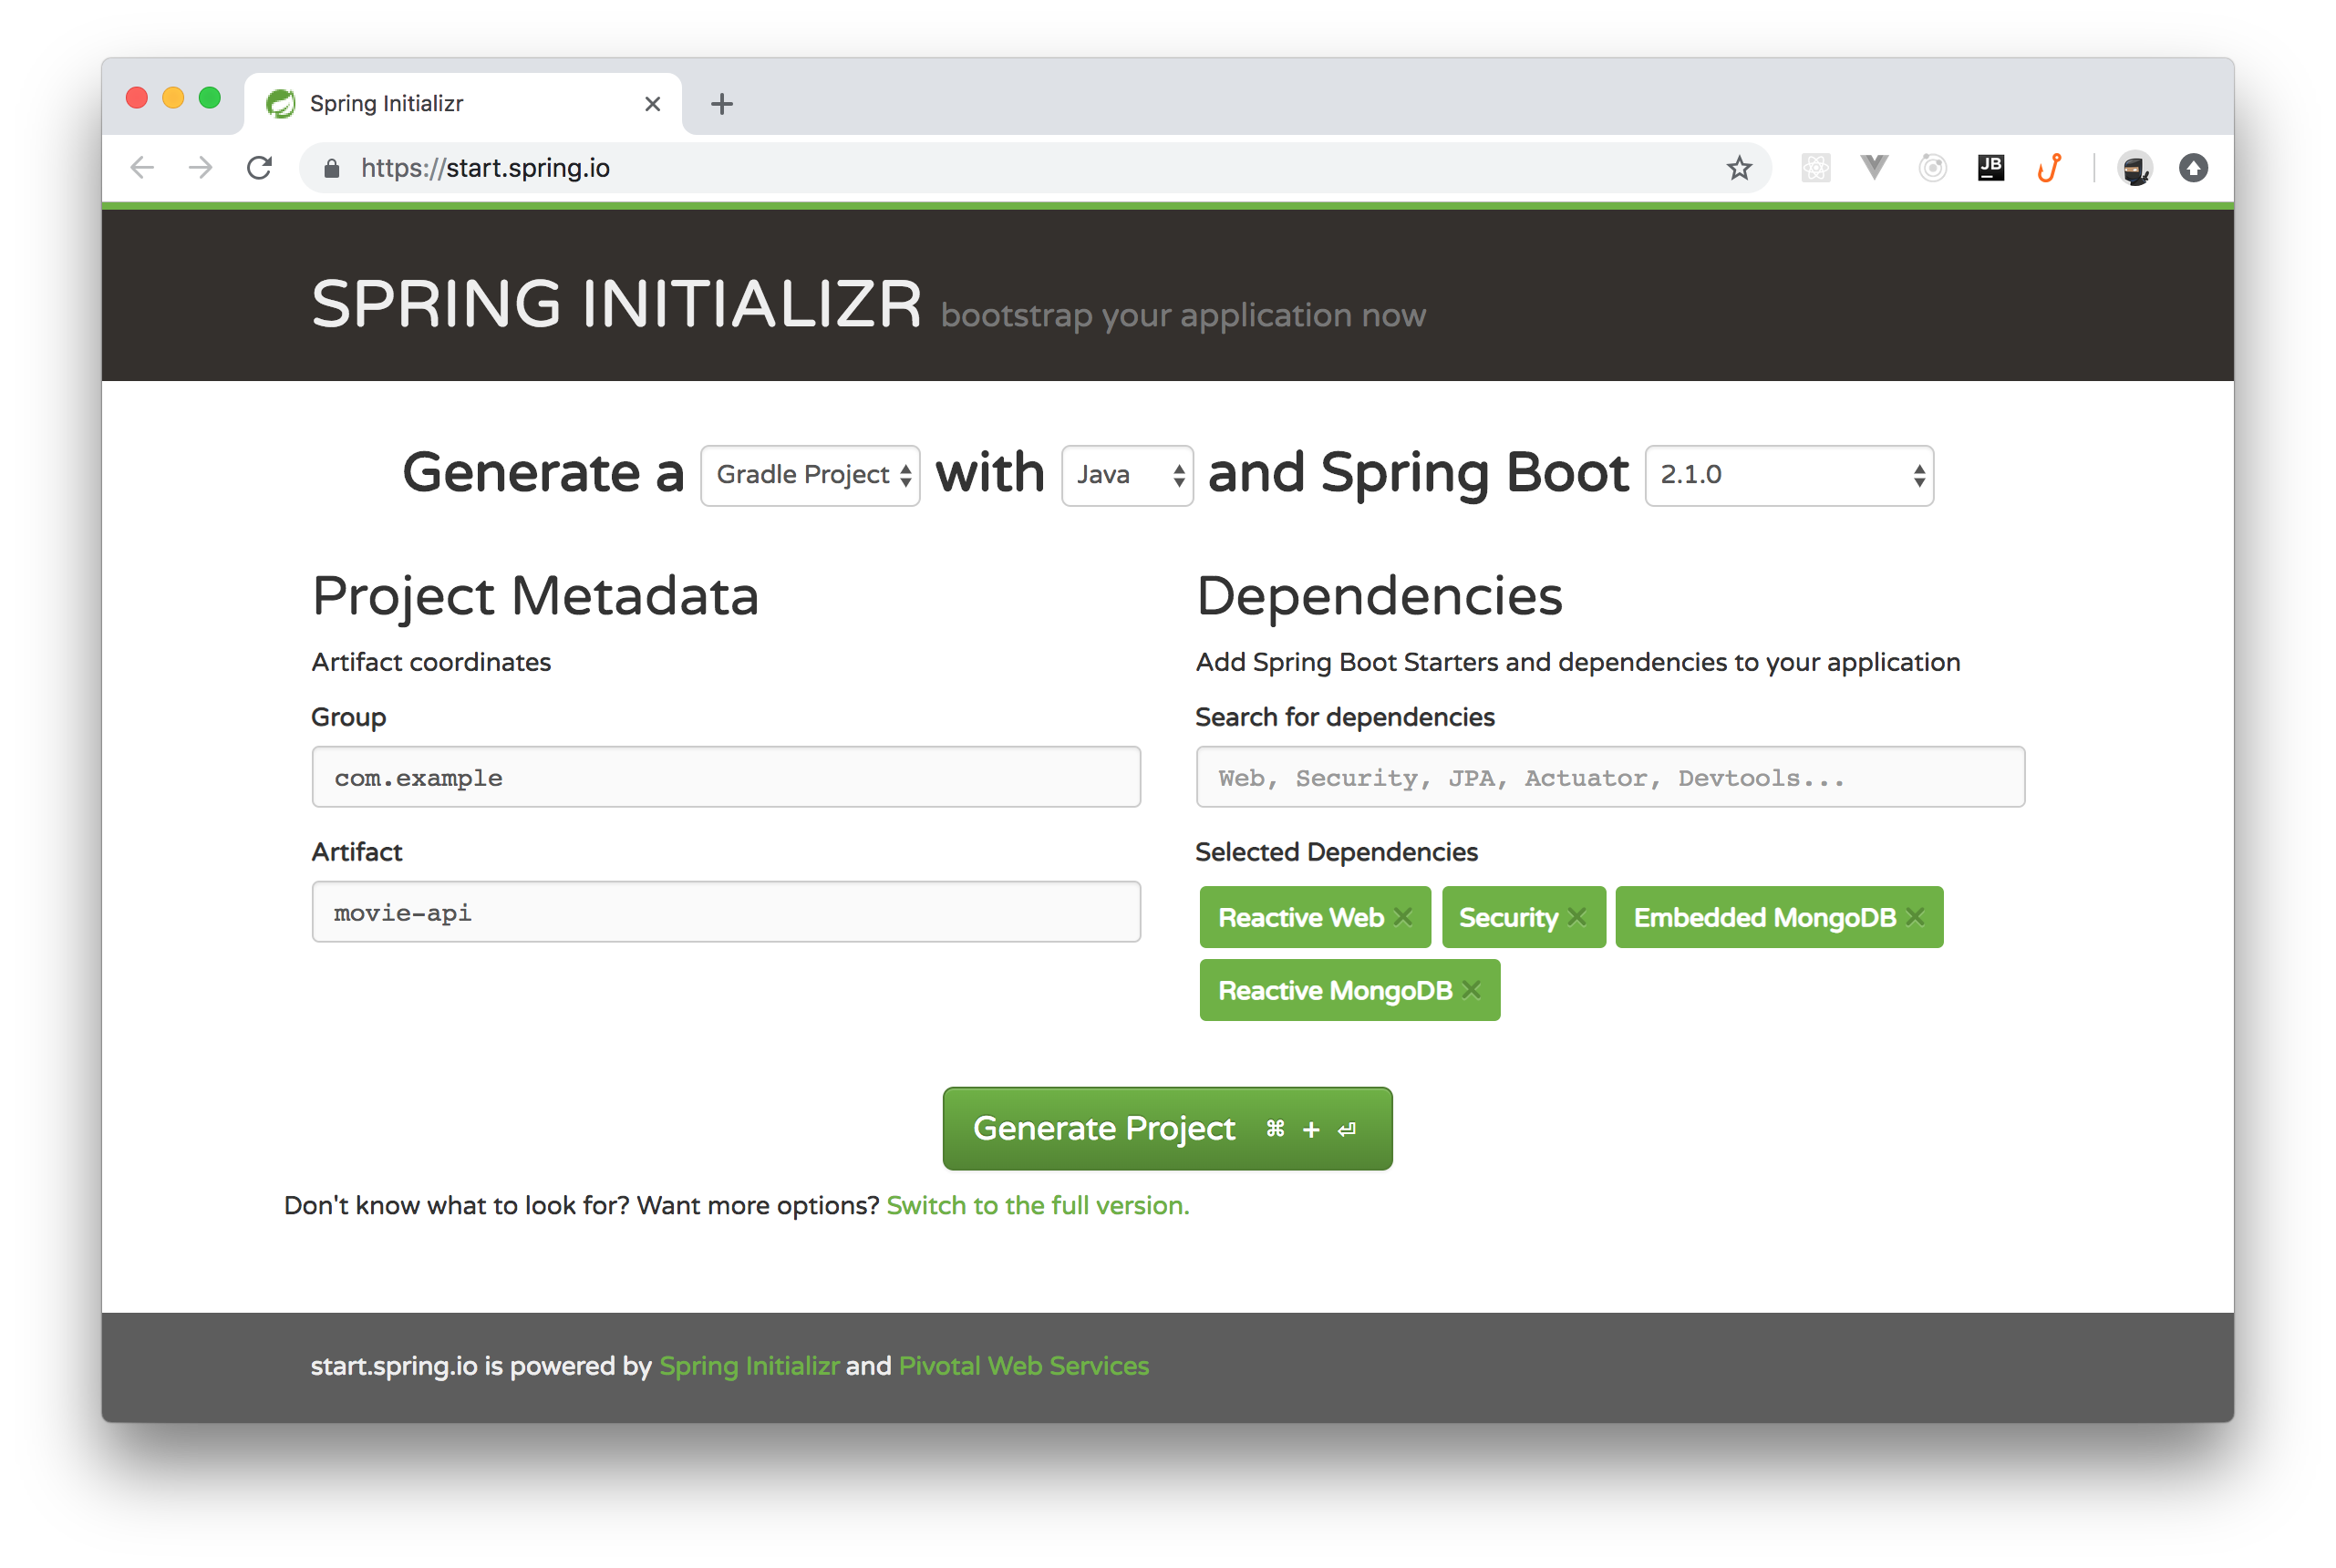 Generating Spring Boot project with Spring Initializr